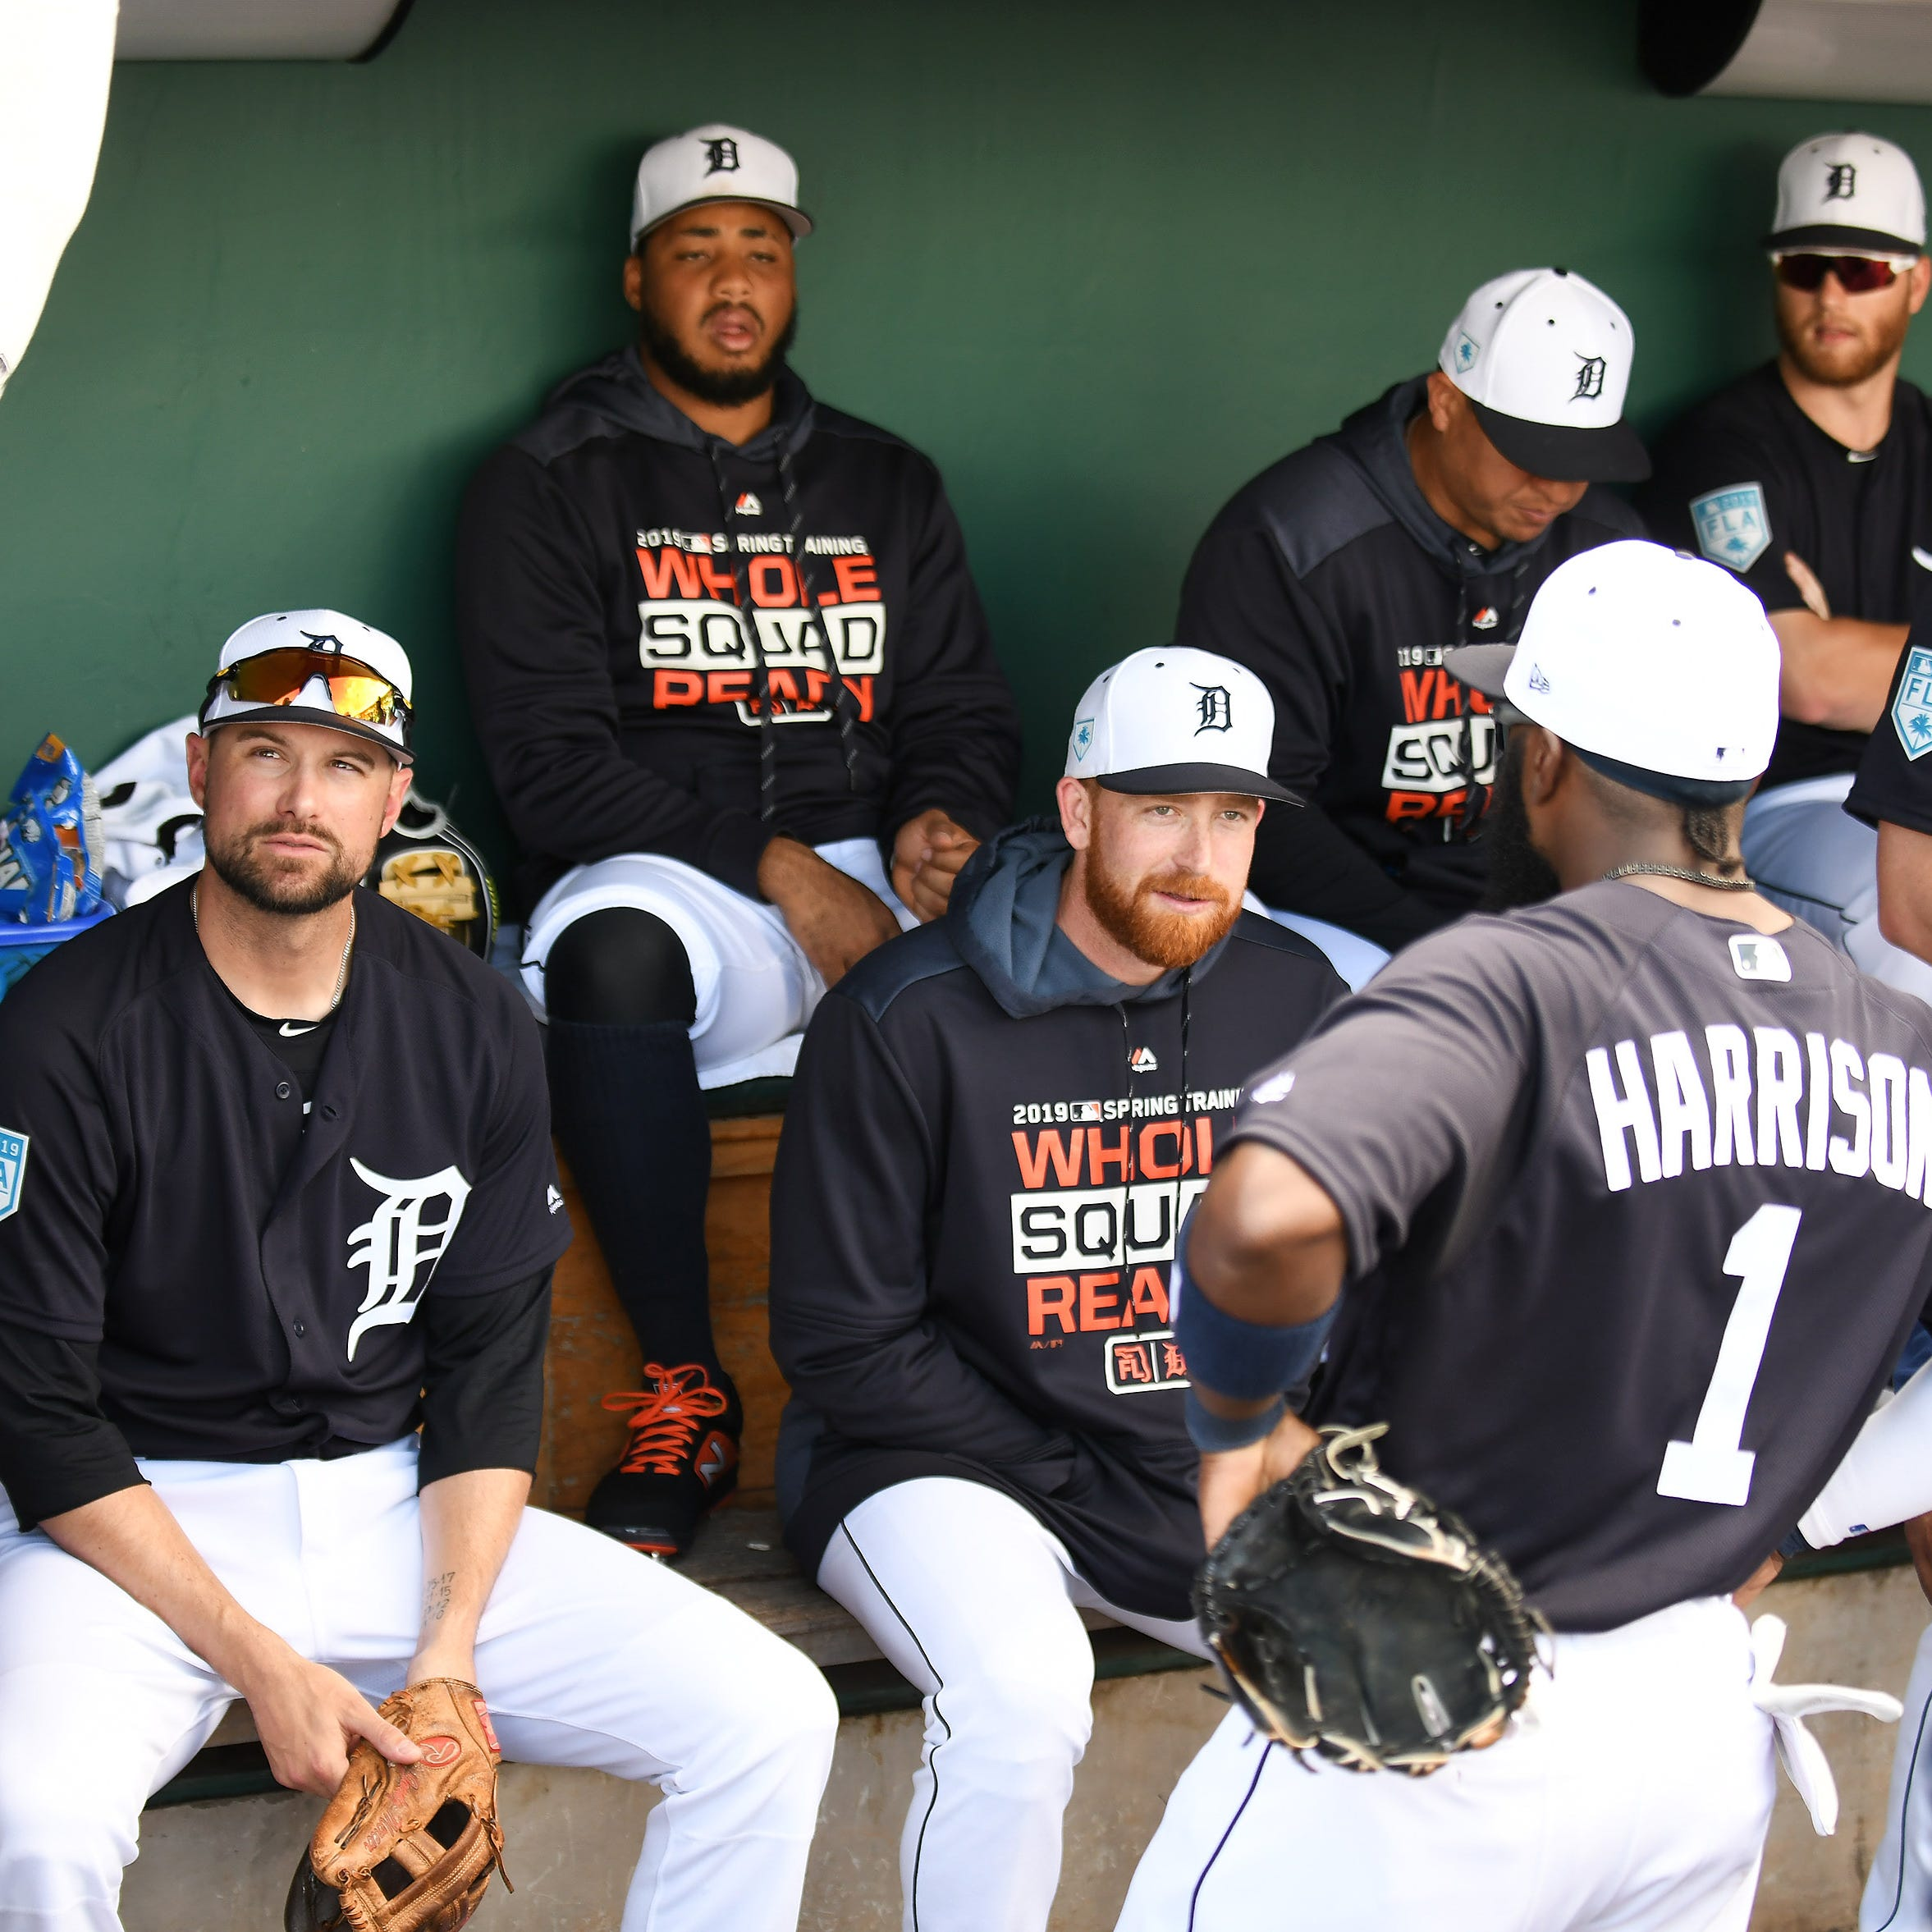 The Josh & Jordy Show: Veteran duo gives Tigers a professional look up the middle